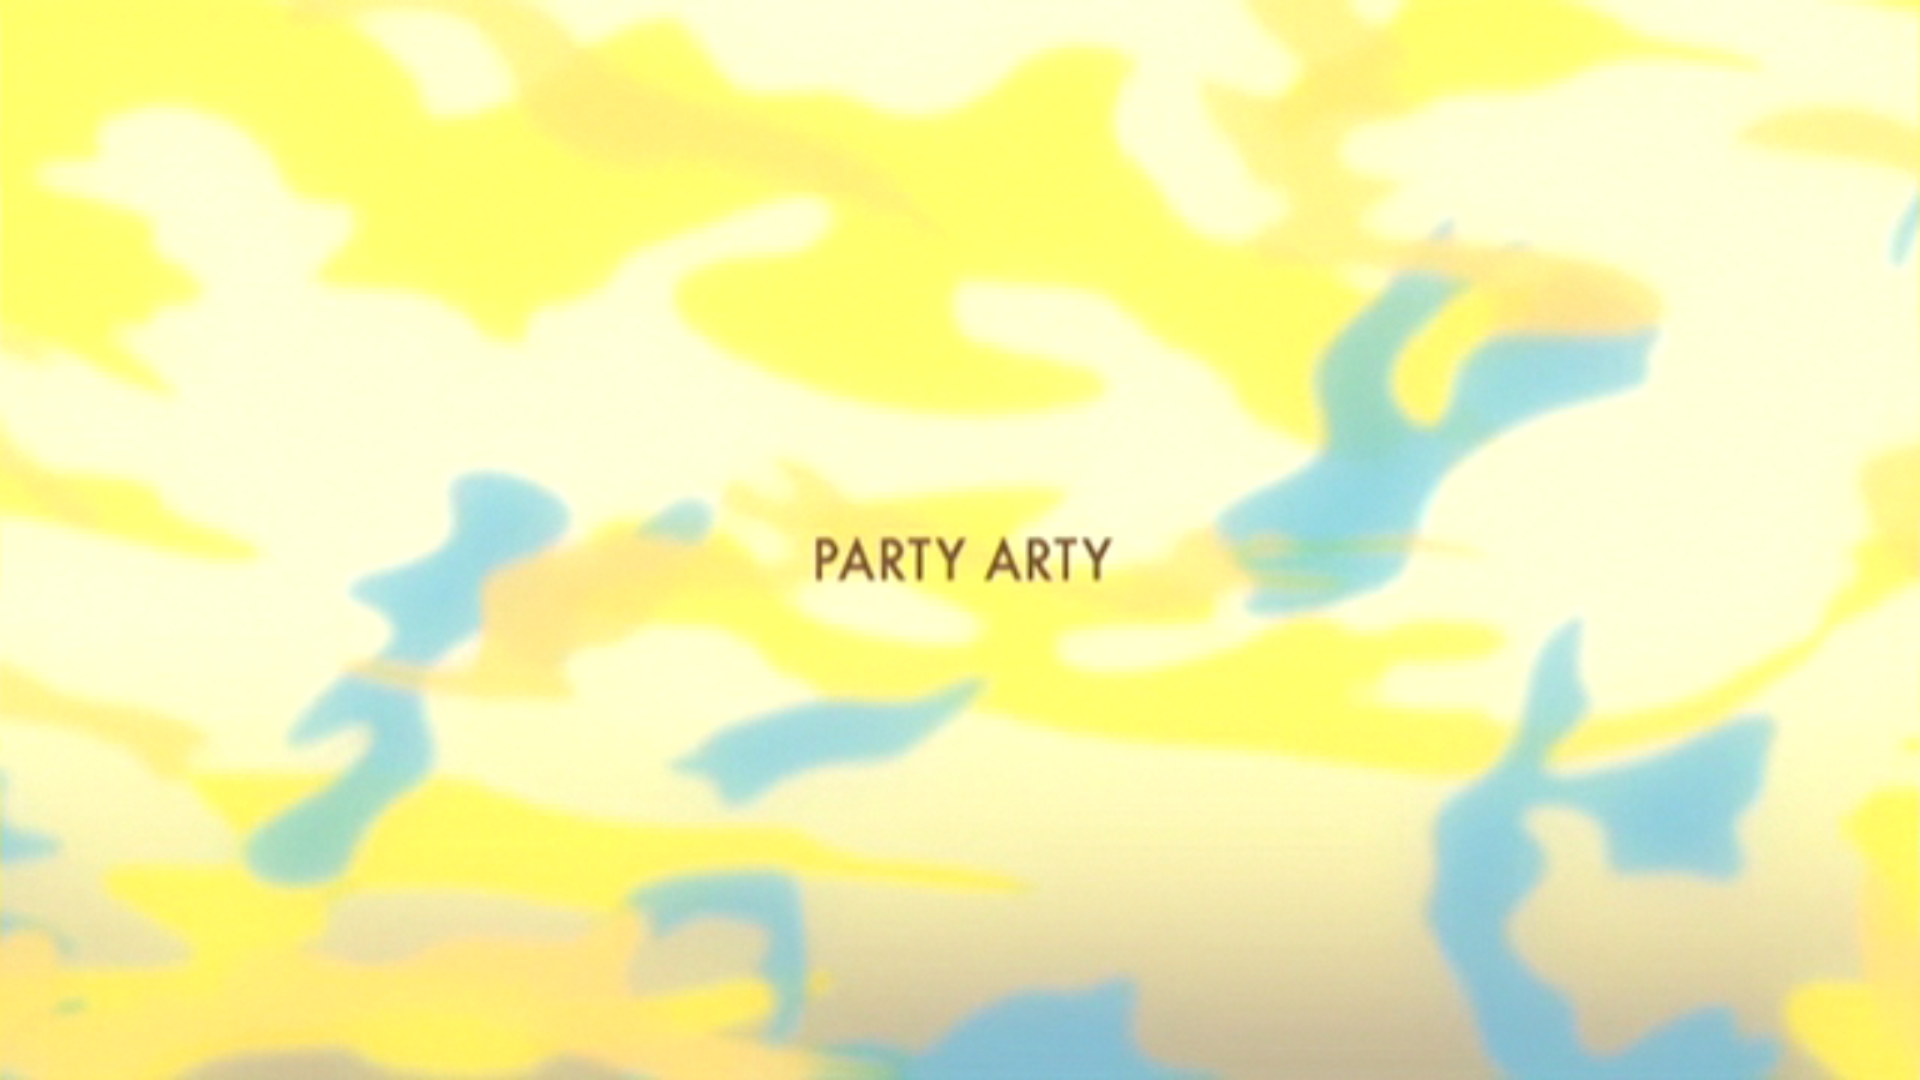 Party Arty title card